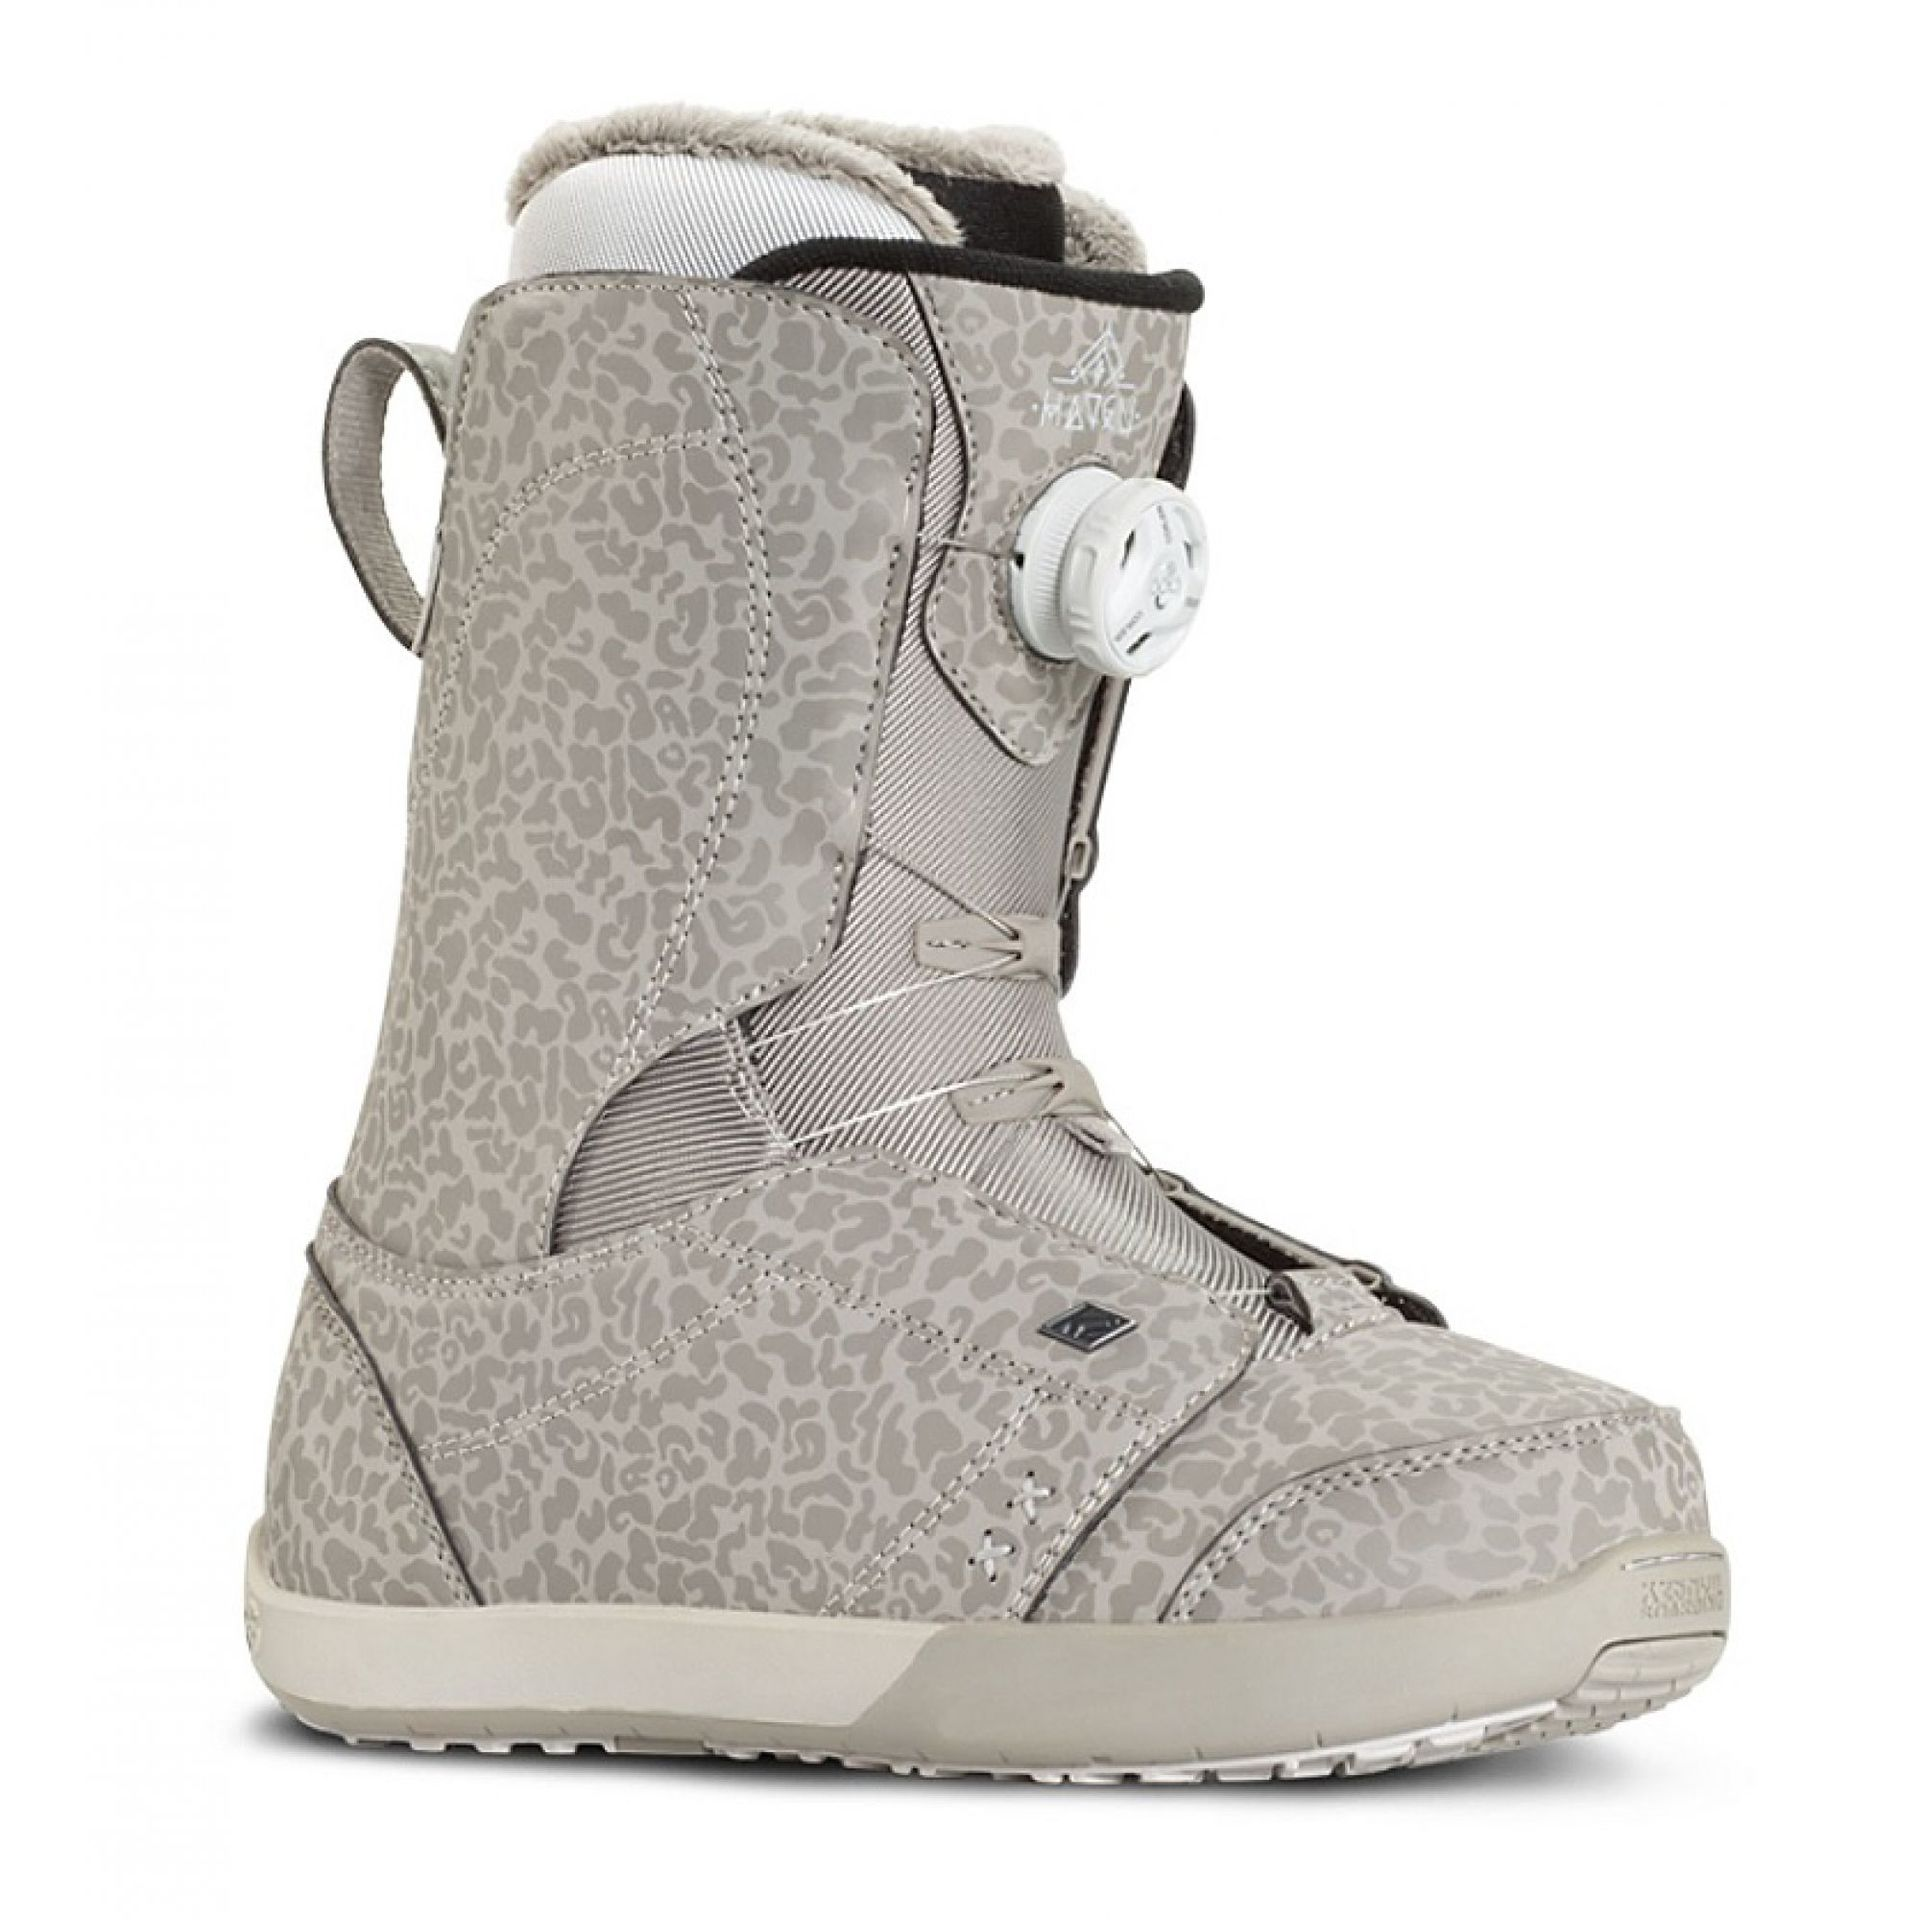 BUTY SNOWBOARDOWE K2 HAVEN DUNE GREY